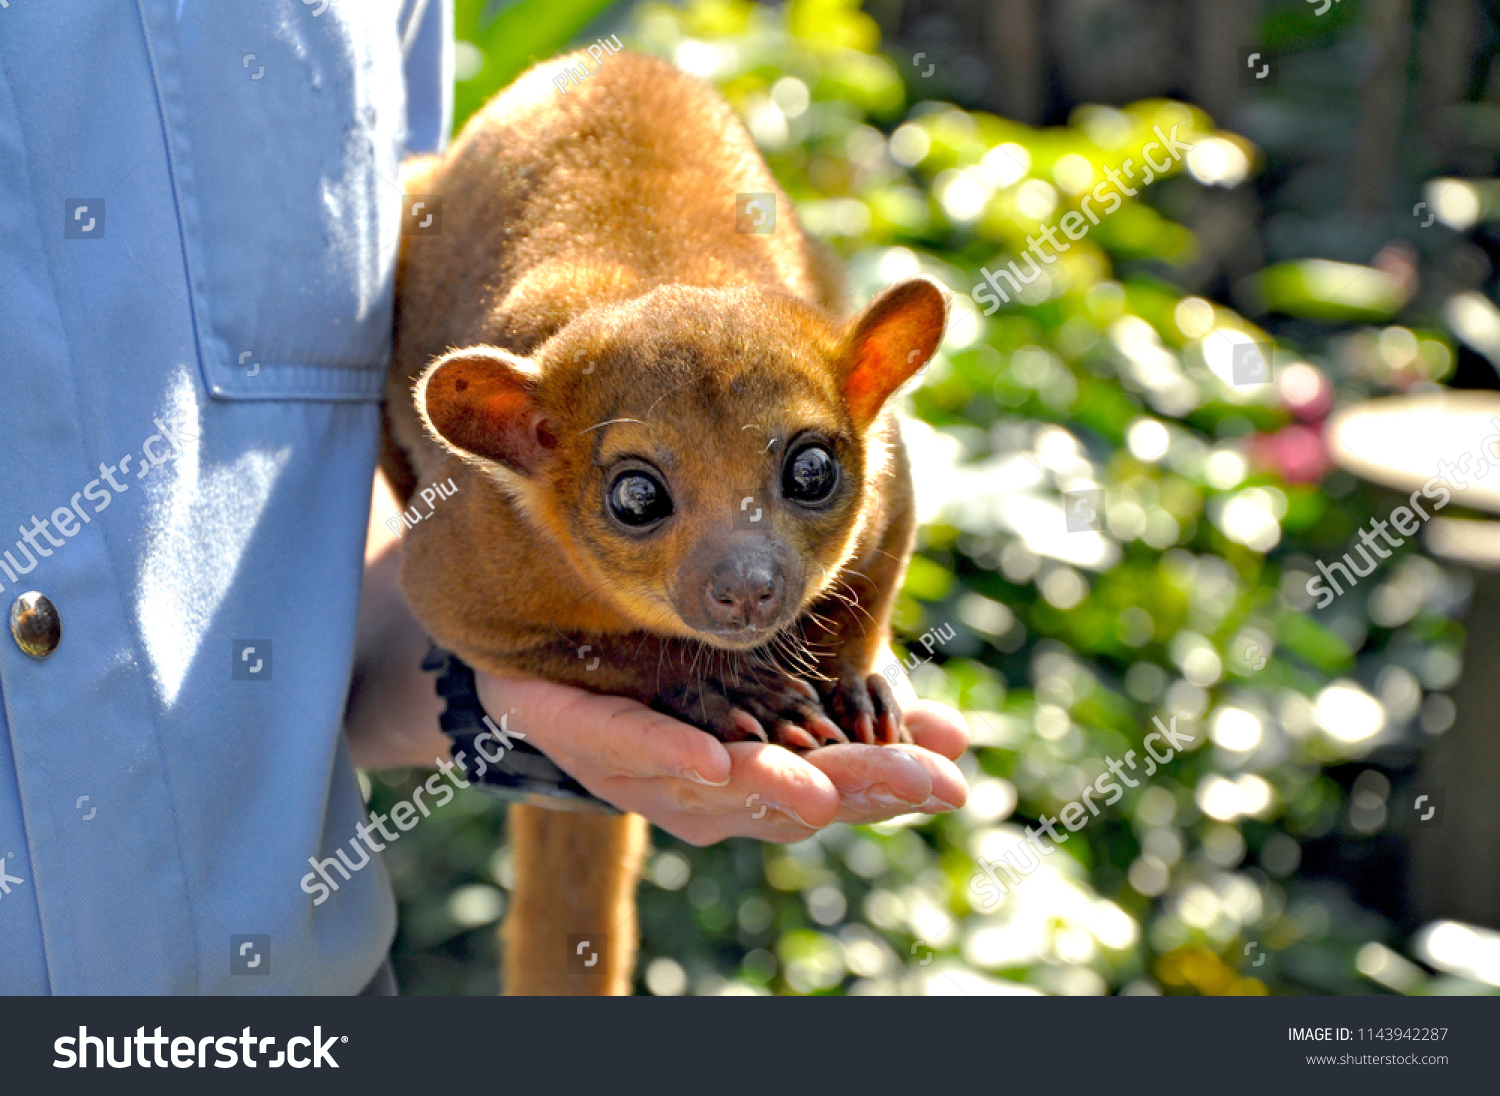 Adorable Kinkajou, Potos flavus, with big cute eyes looking at the camera, sitting on the hand